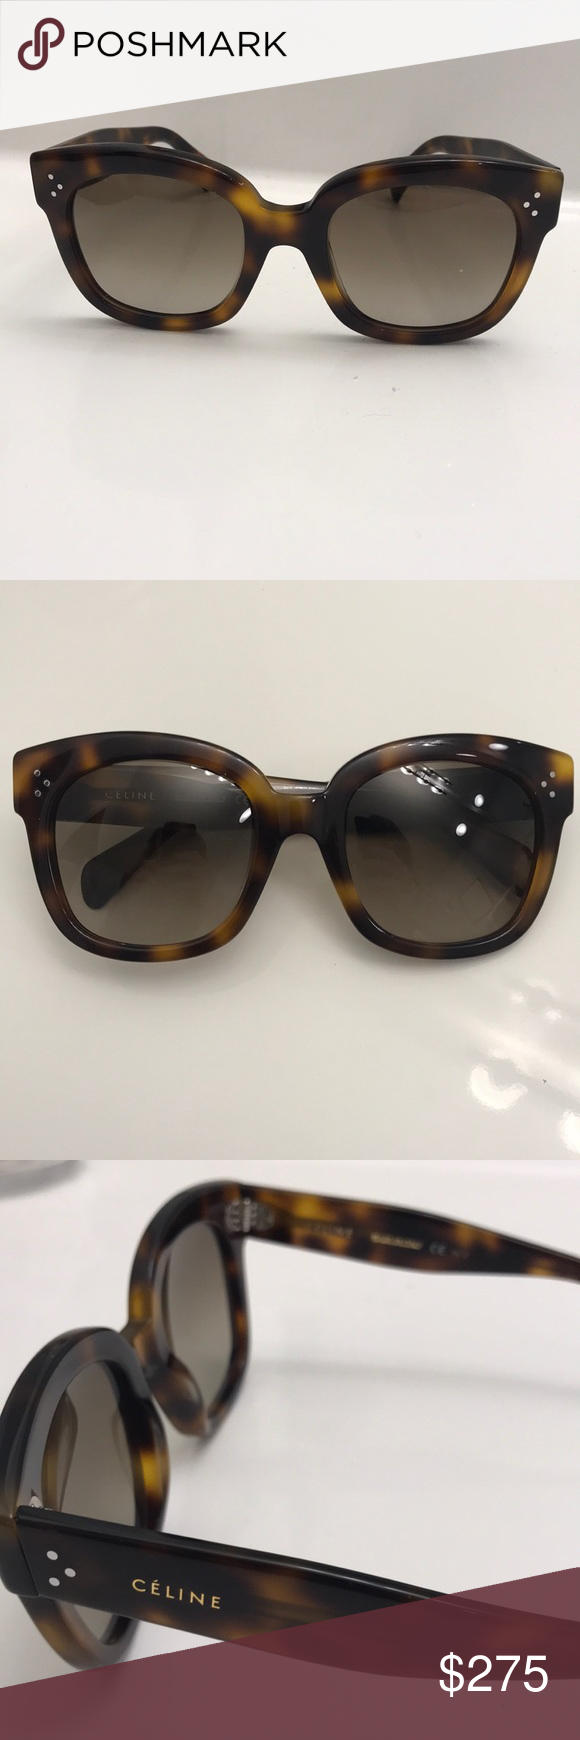 2c31b0087dd2 Authentic new Céline Audrey sunglasses Tortoise Audrey Céline sunglasses.  Great condition. Comes with cleaning